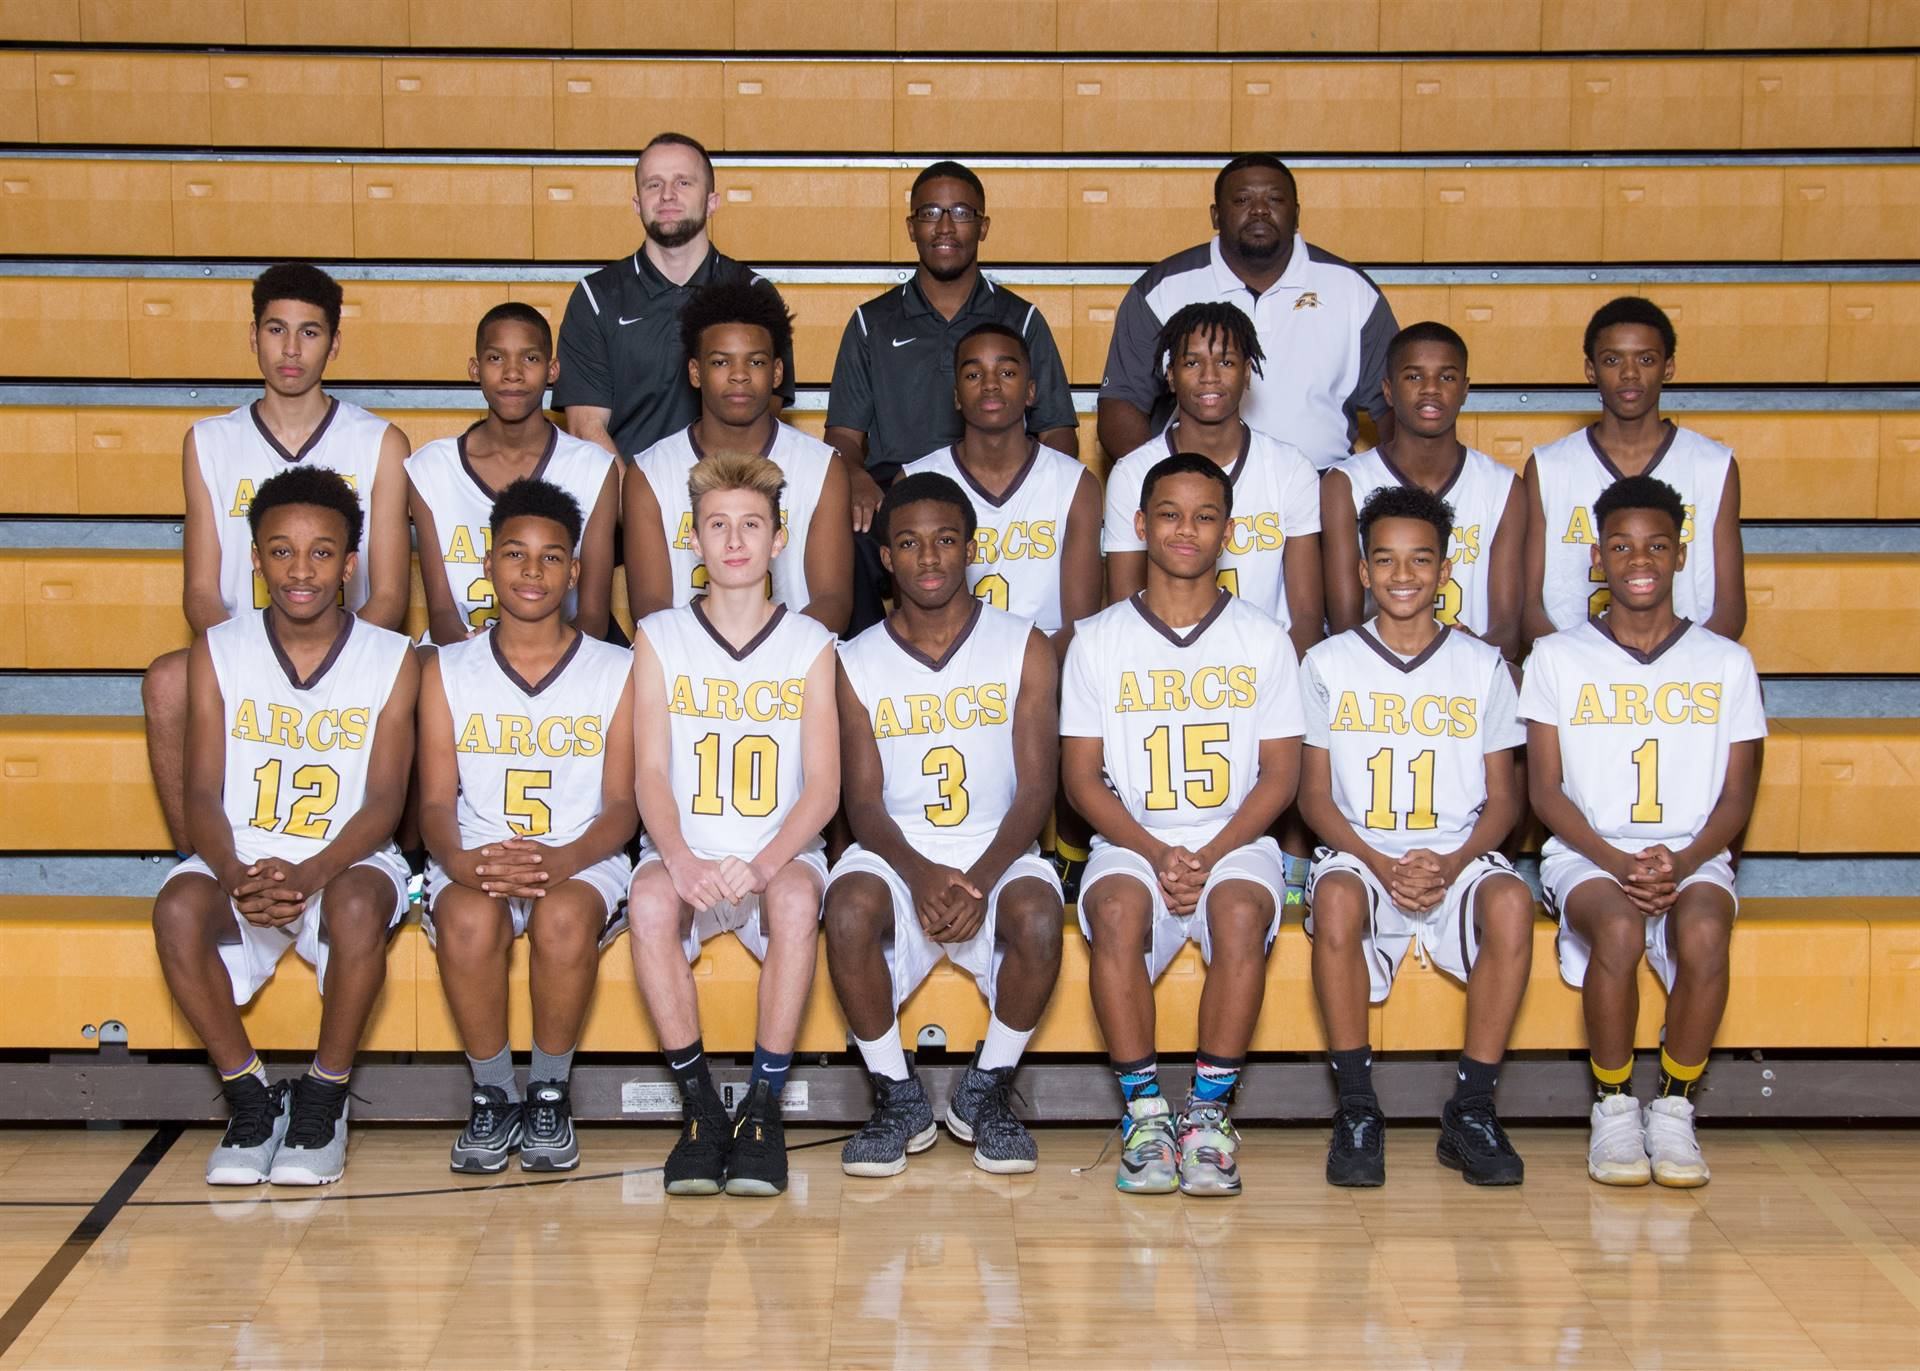 Boys Basketball With Regard To South Euclid Lyndhurst Calendar